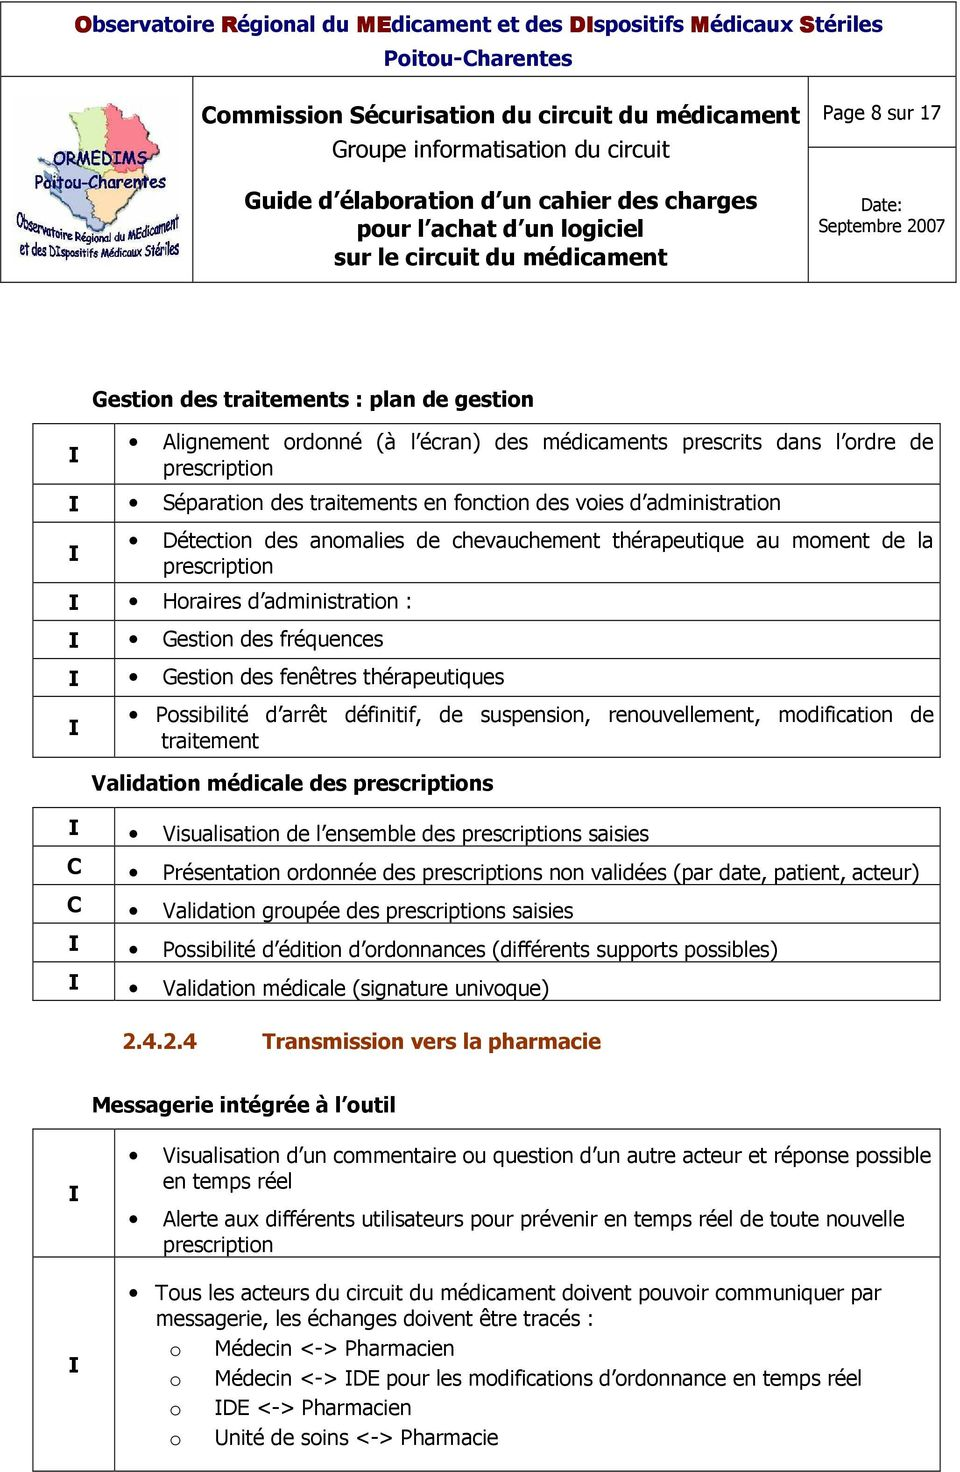 Gestion des fréquences Gestion des fenêtres thérapeutiques Possibilité d arrêt définitif, de suspension, renouvellement, modification de traitement Validation médicale des prescriptions Visualisation